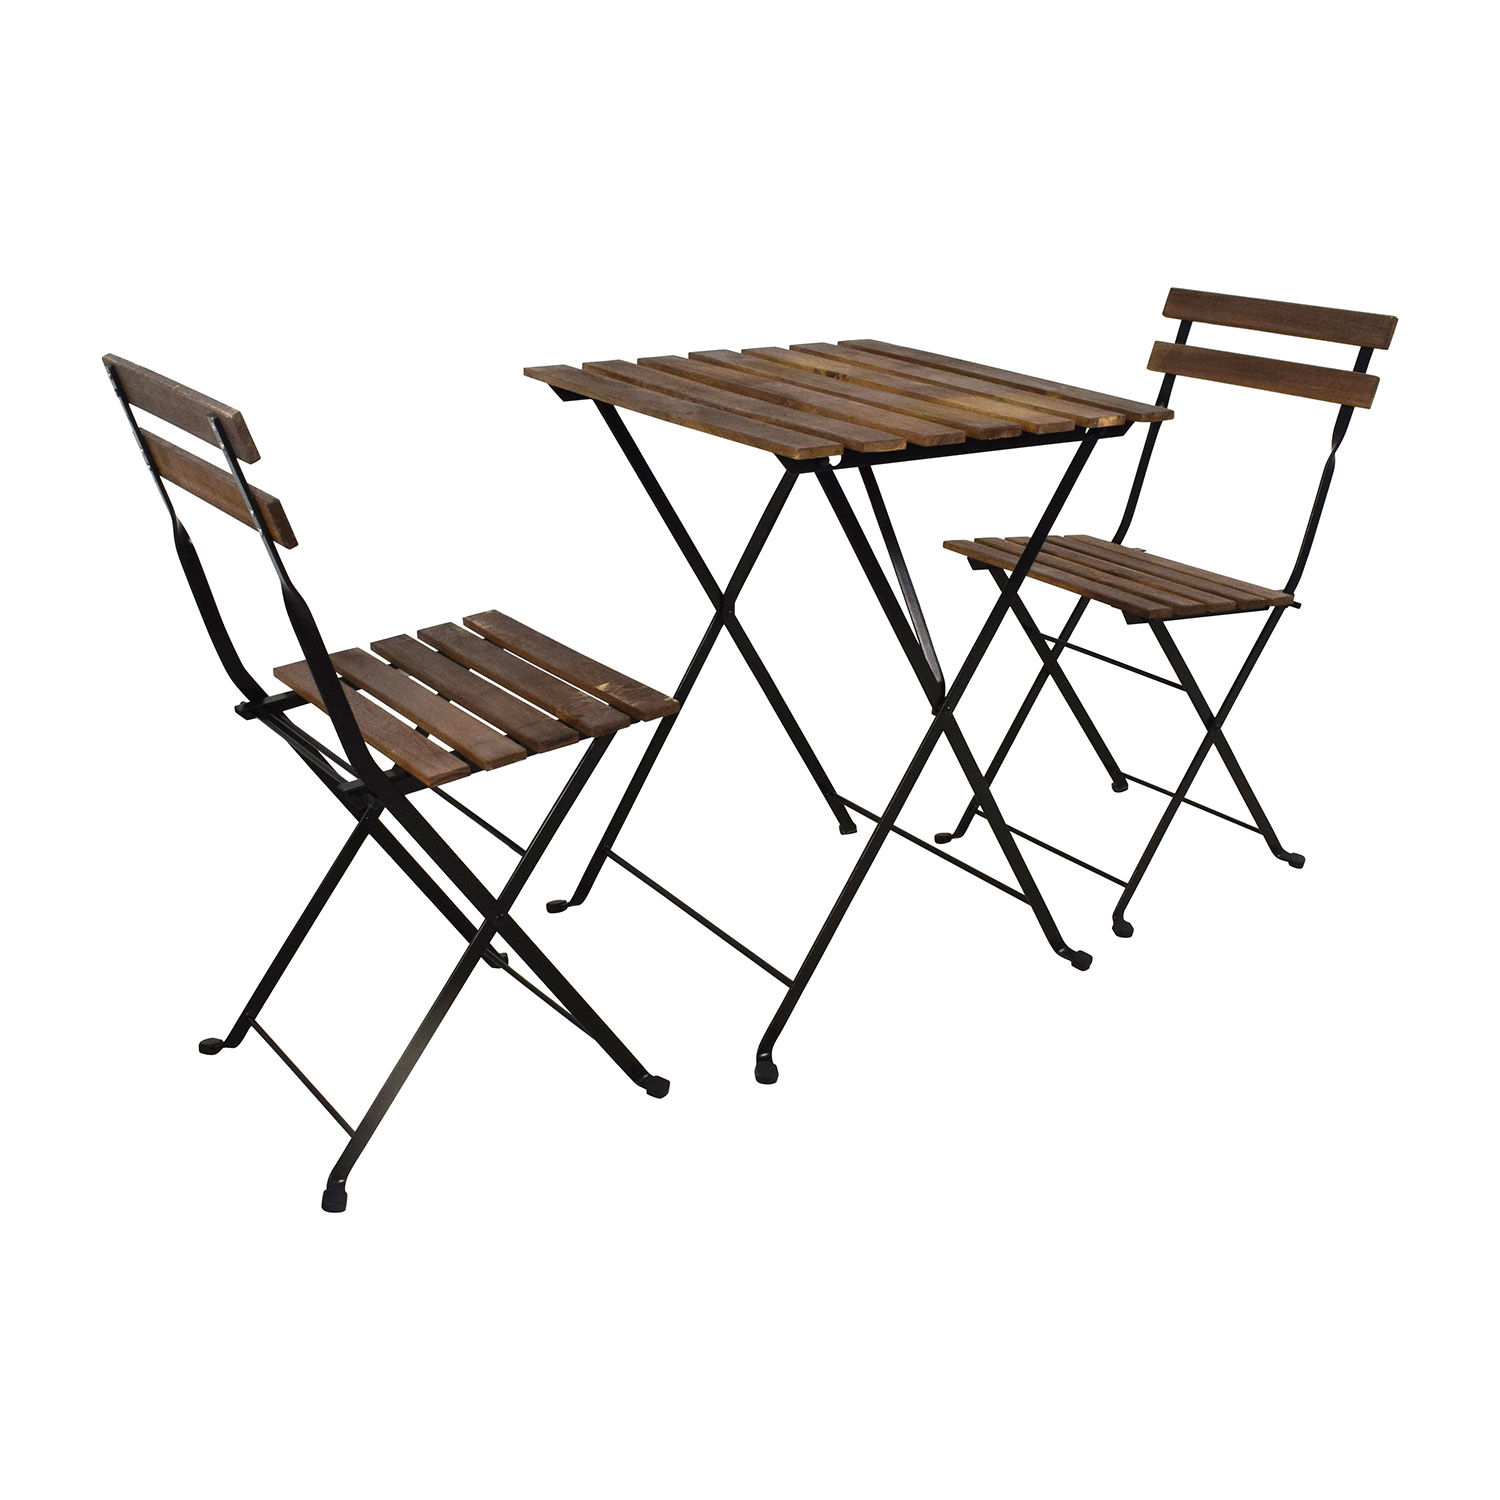 IKEA IKEA Tarno Folding Table and Two Folding Chairs for sale